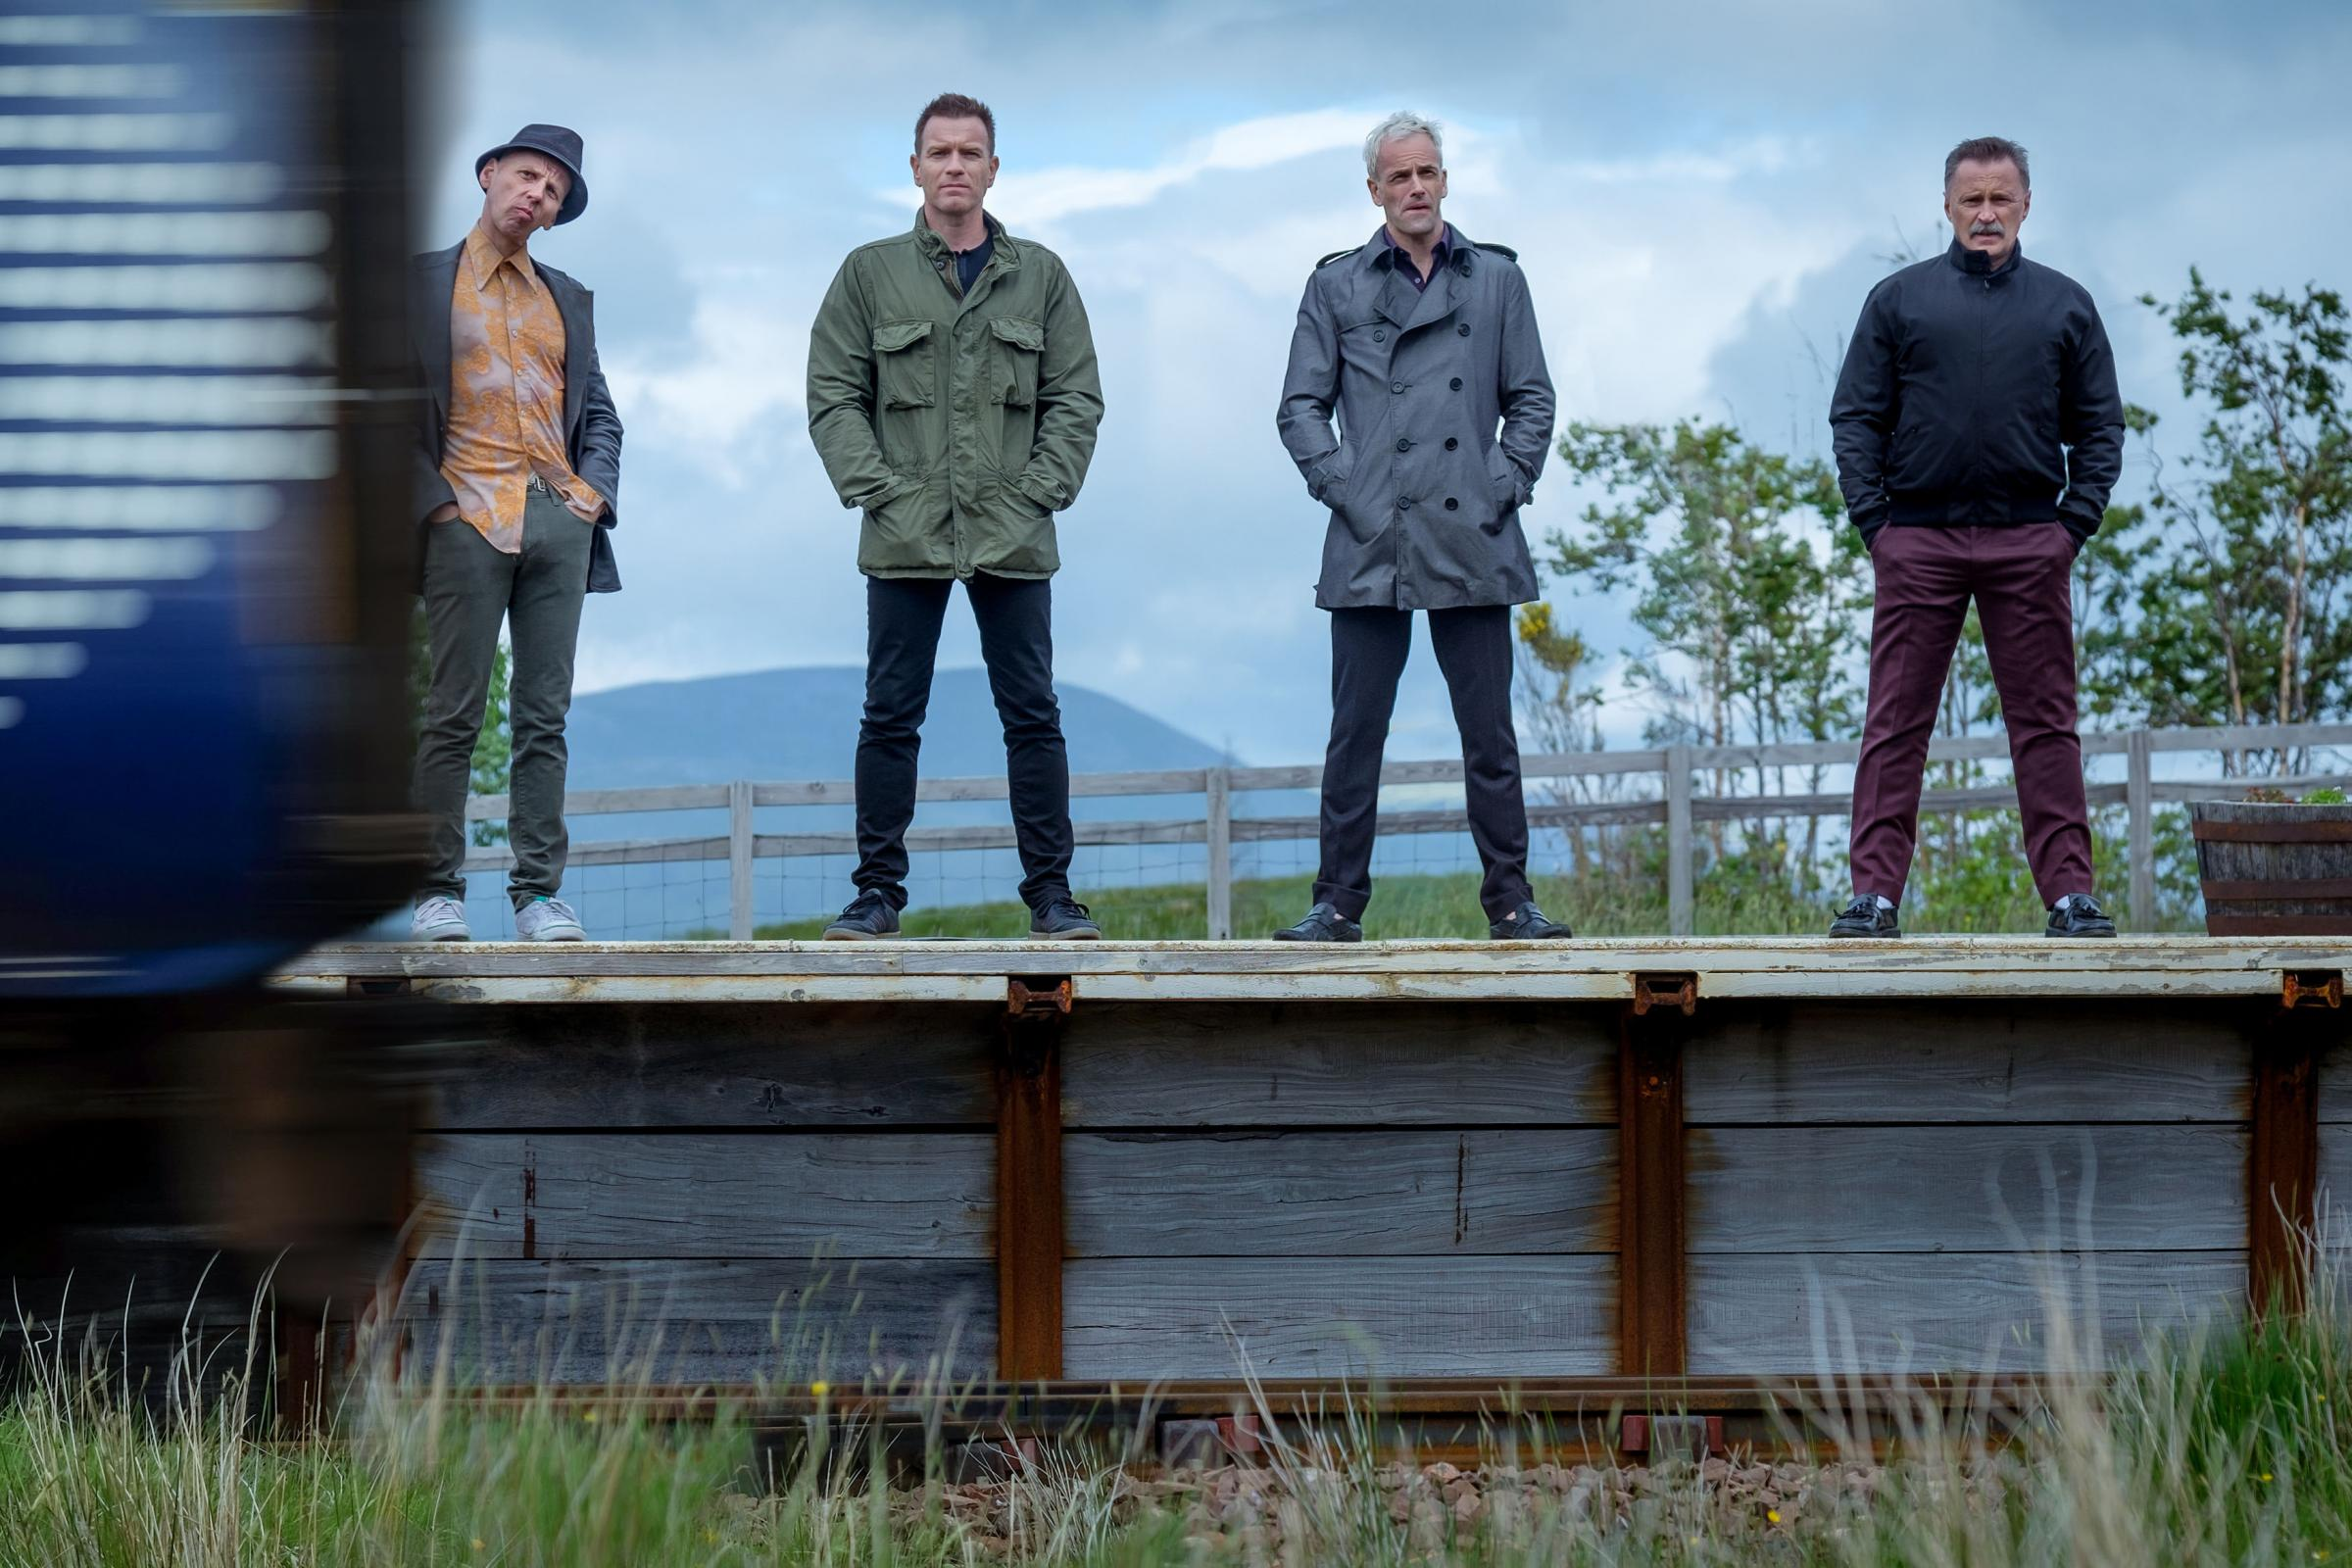 Sony Pictures Releasing (UK) undated handout photo of (left to right)  Ewen Bremner (Spud), Ewan McGregor (Renton), Jonny Lee Miller (Sickboy) and Robert Carlyle (Begbie) from the film Trainspotting 2. PRESS ASSOCIATION Photo. Issue date: Monday July 25,